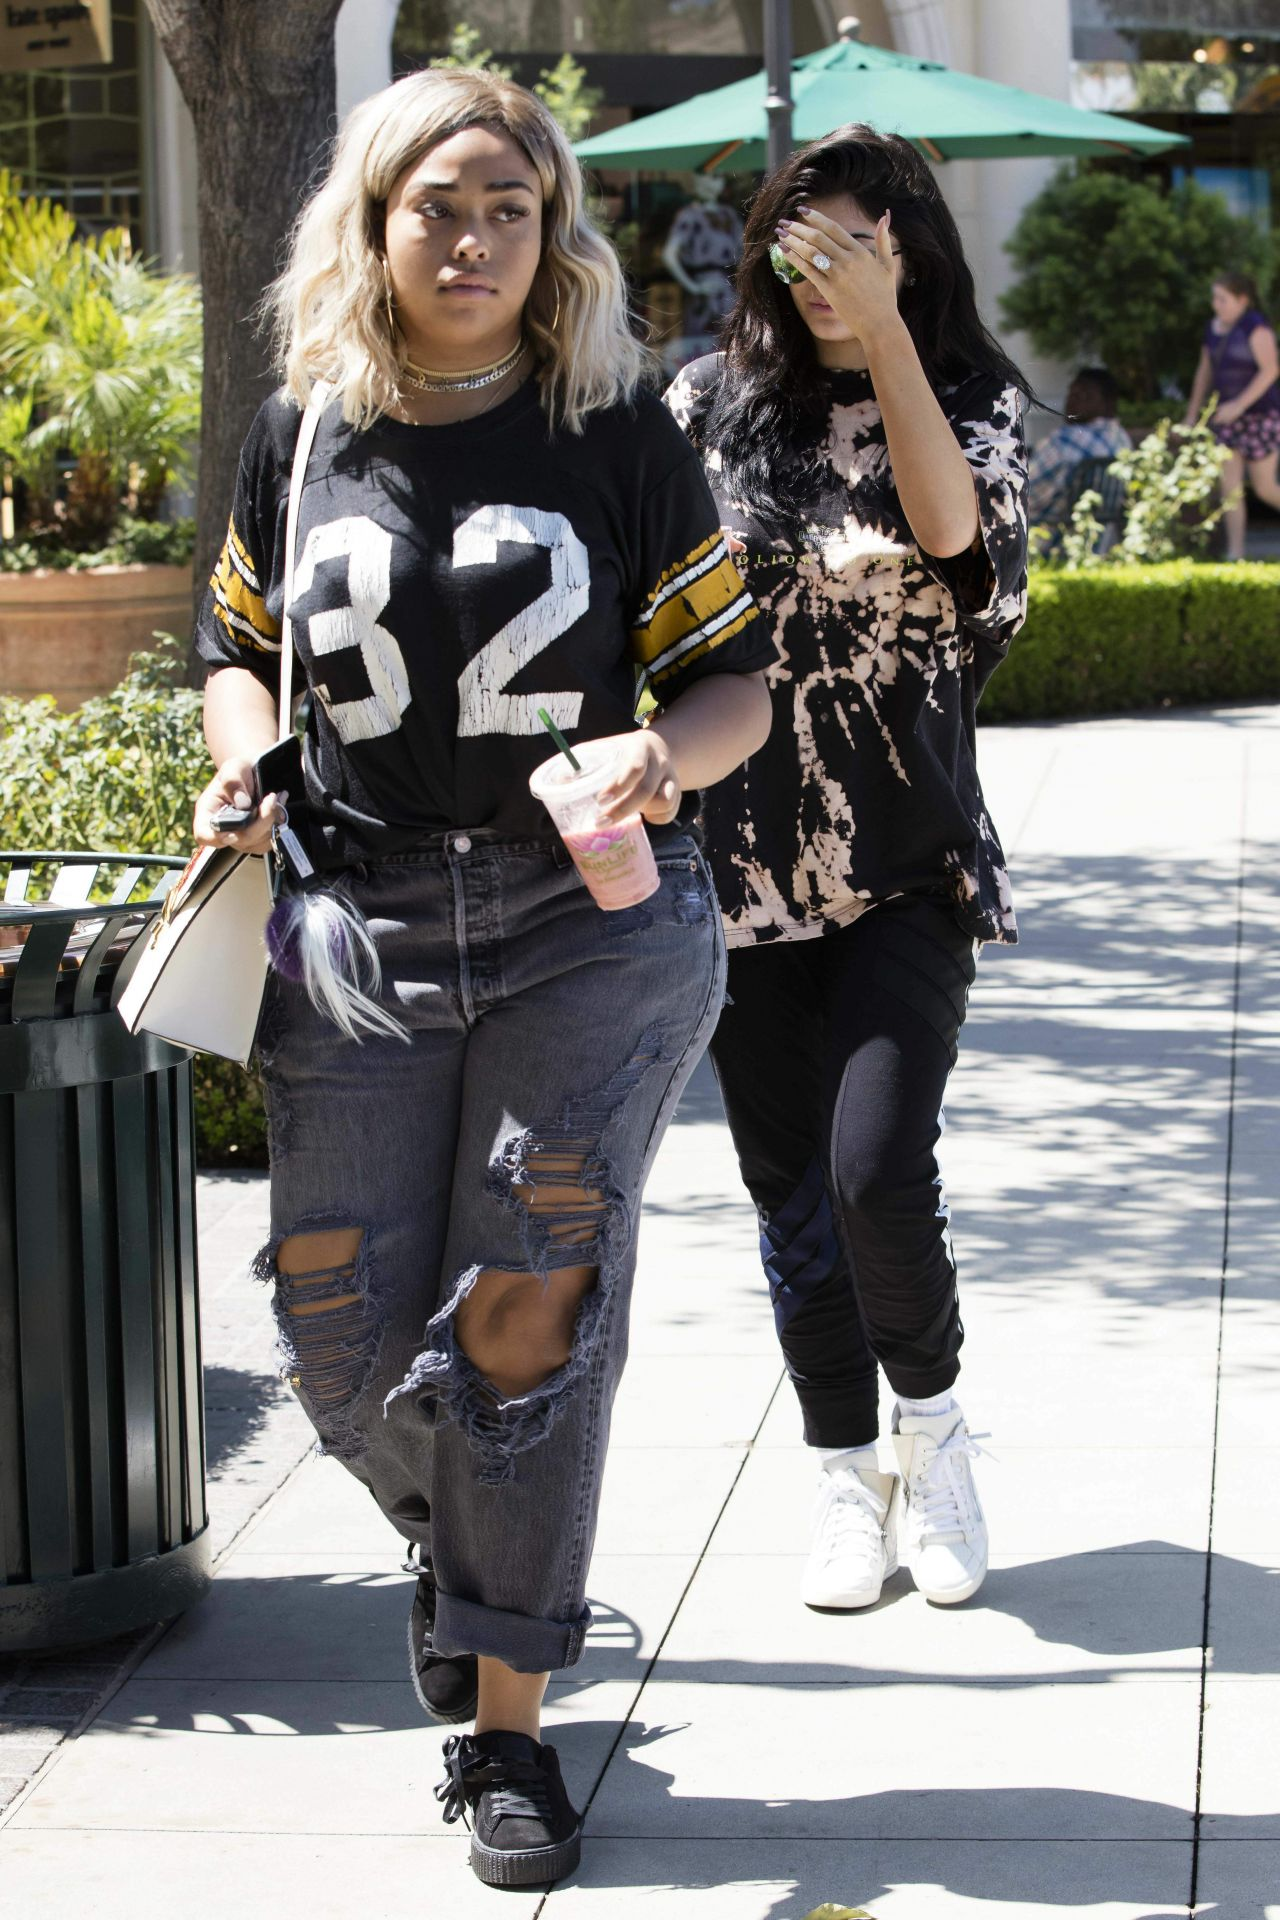 Kylie Jenner Goes For Pizza With Jordyn Woods At Fresh